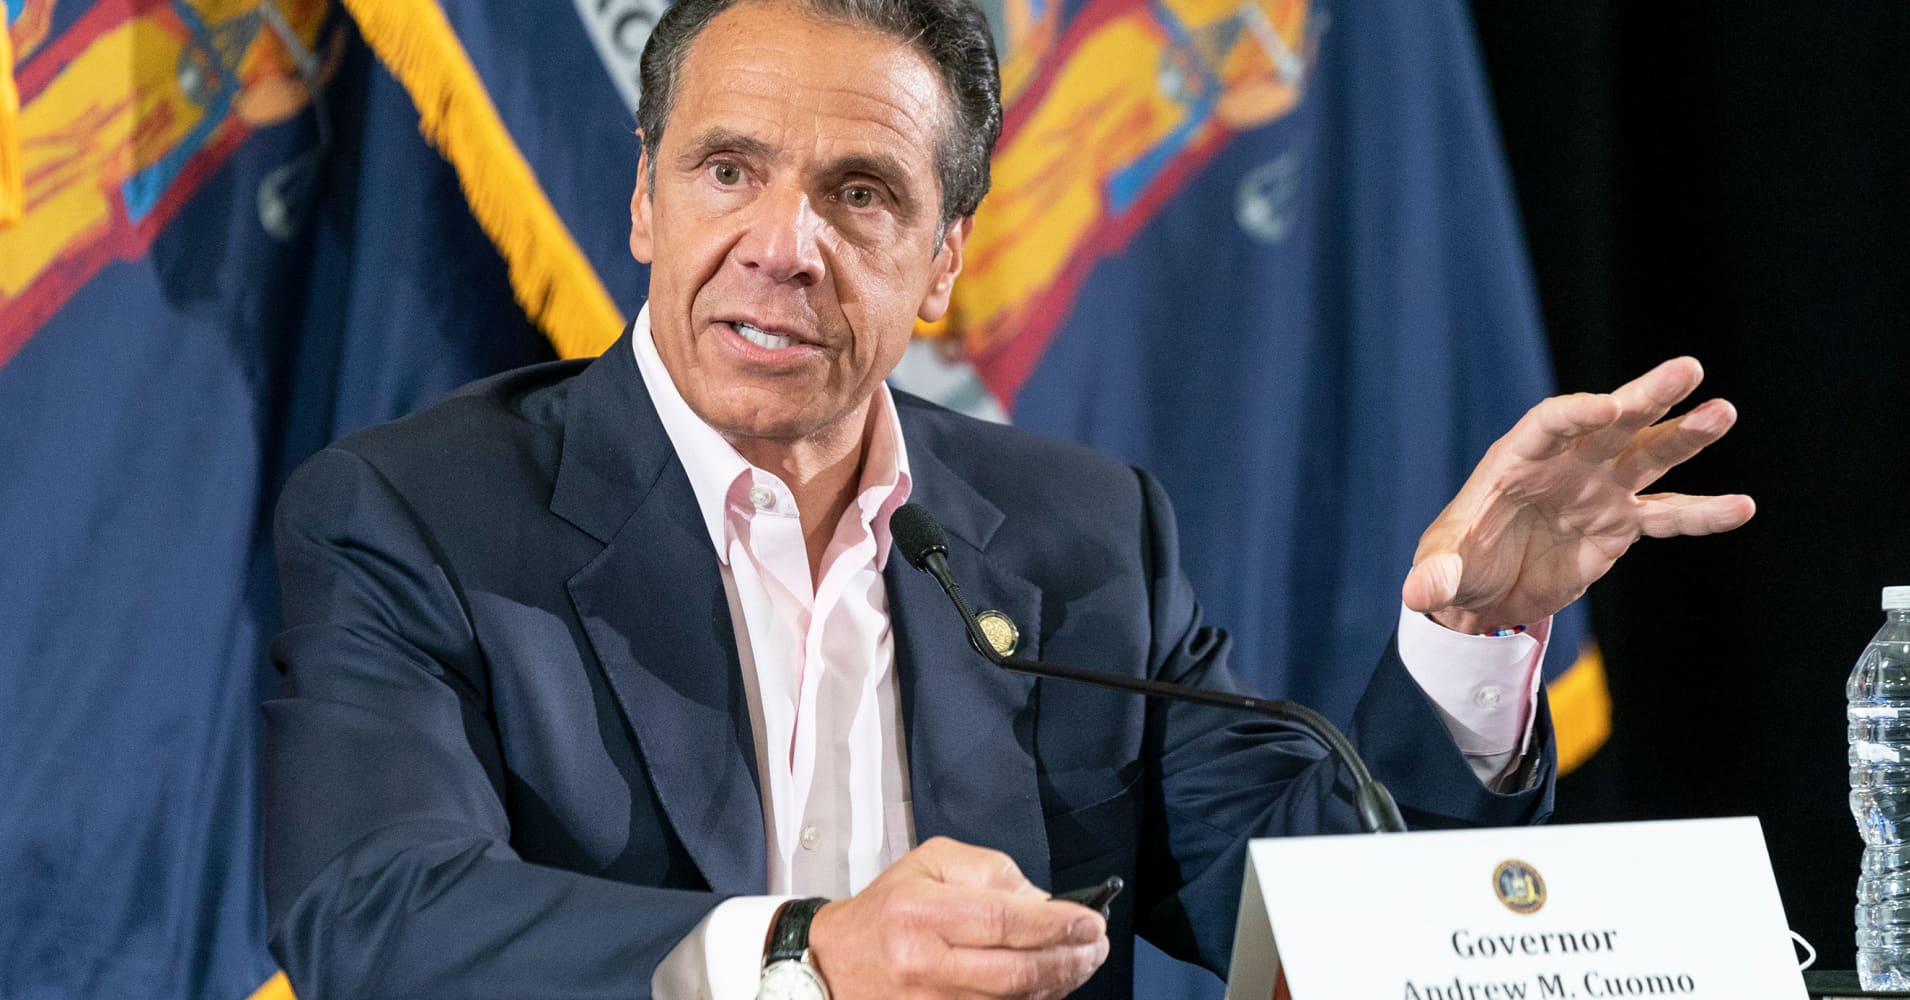 Watch live: NY Gov. Andrew Cuomo holds a press conference on the coronavirus amid national protests